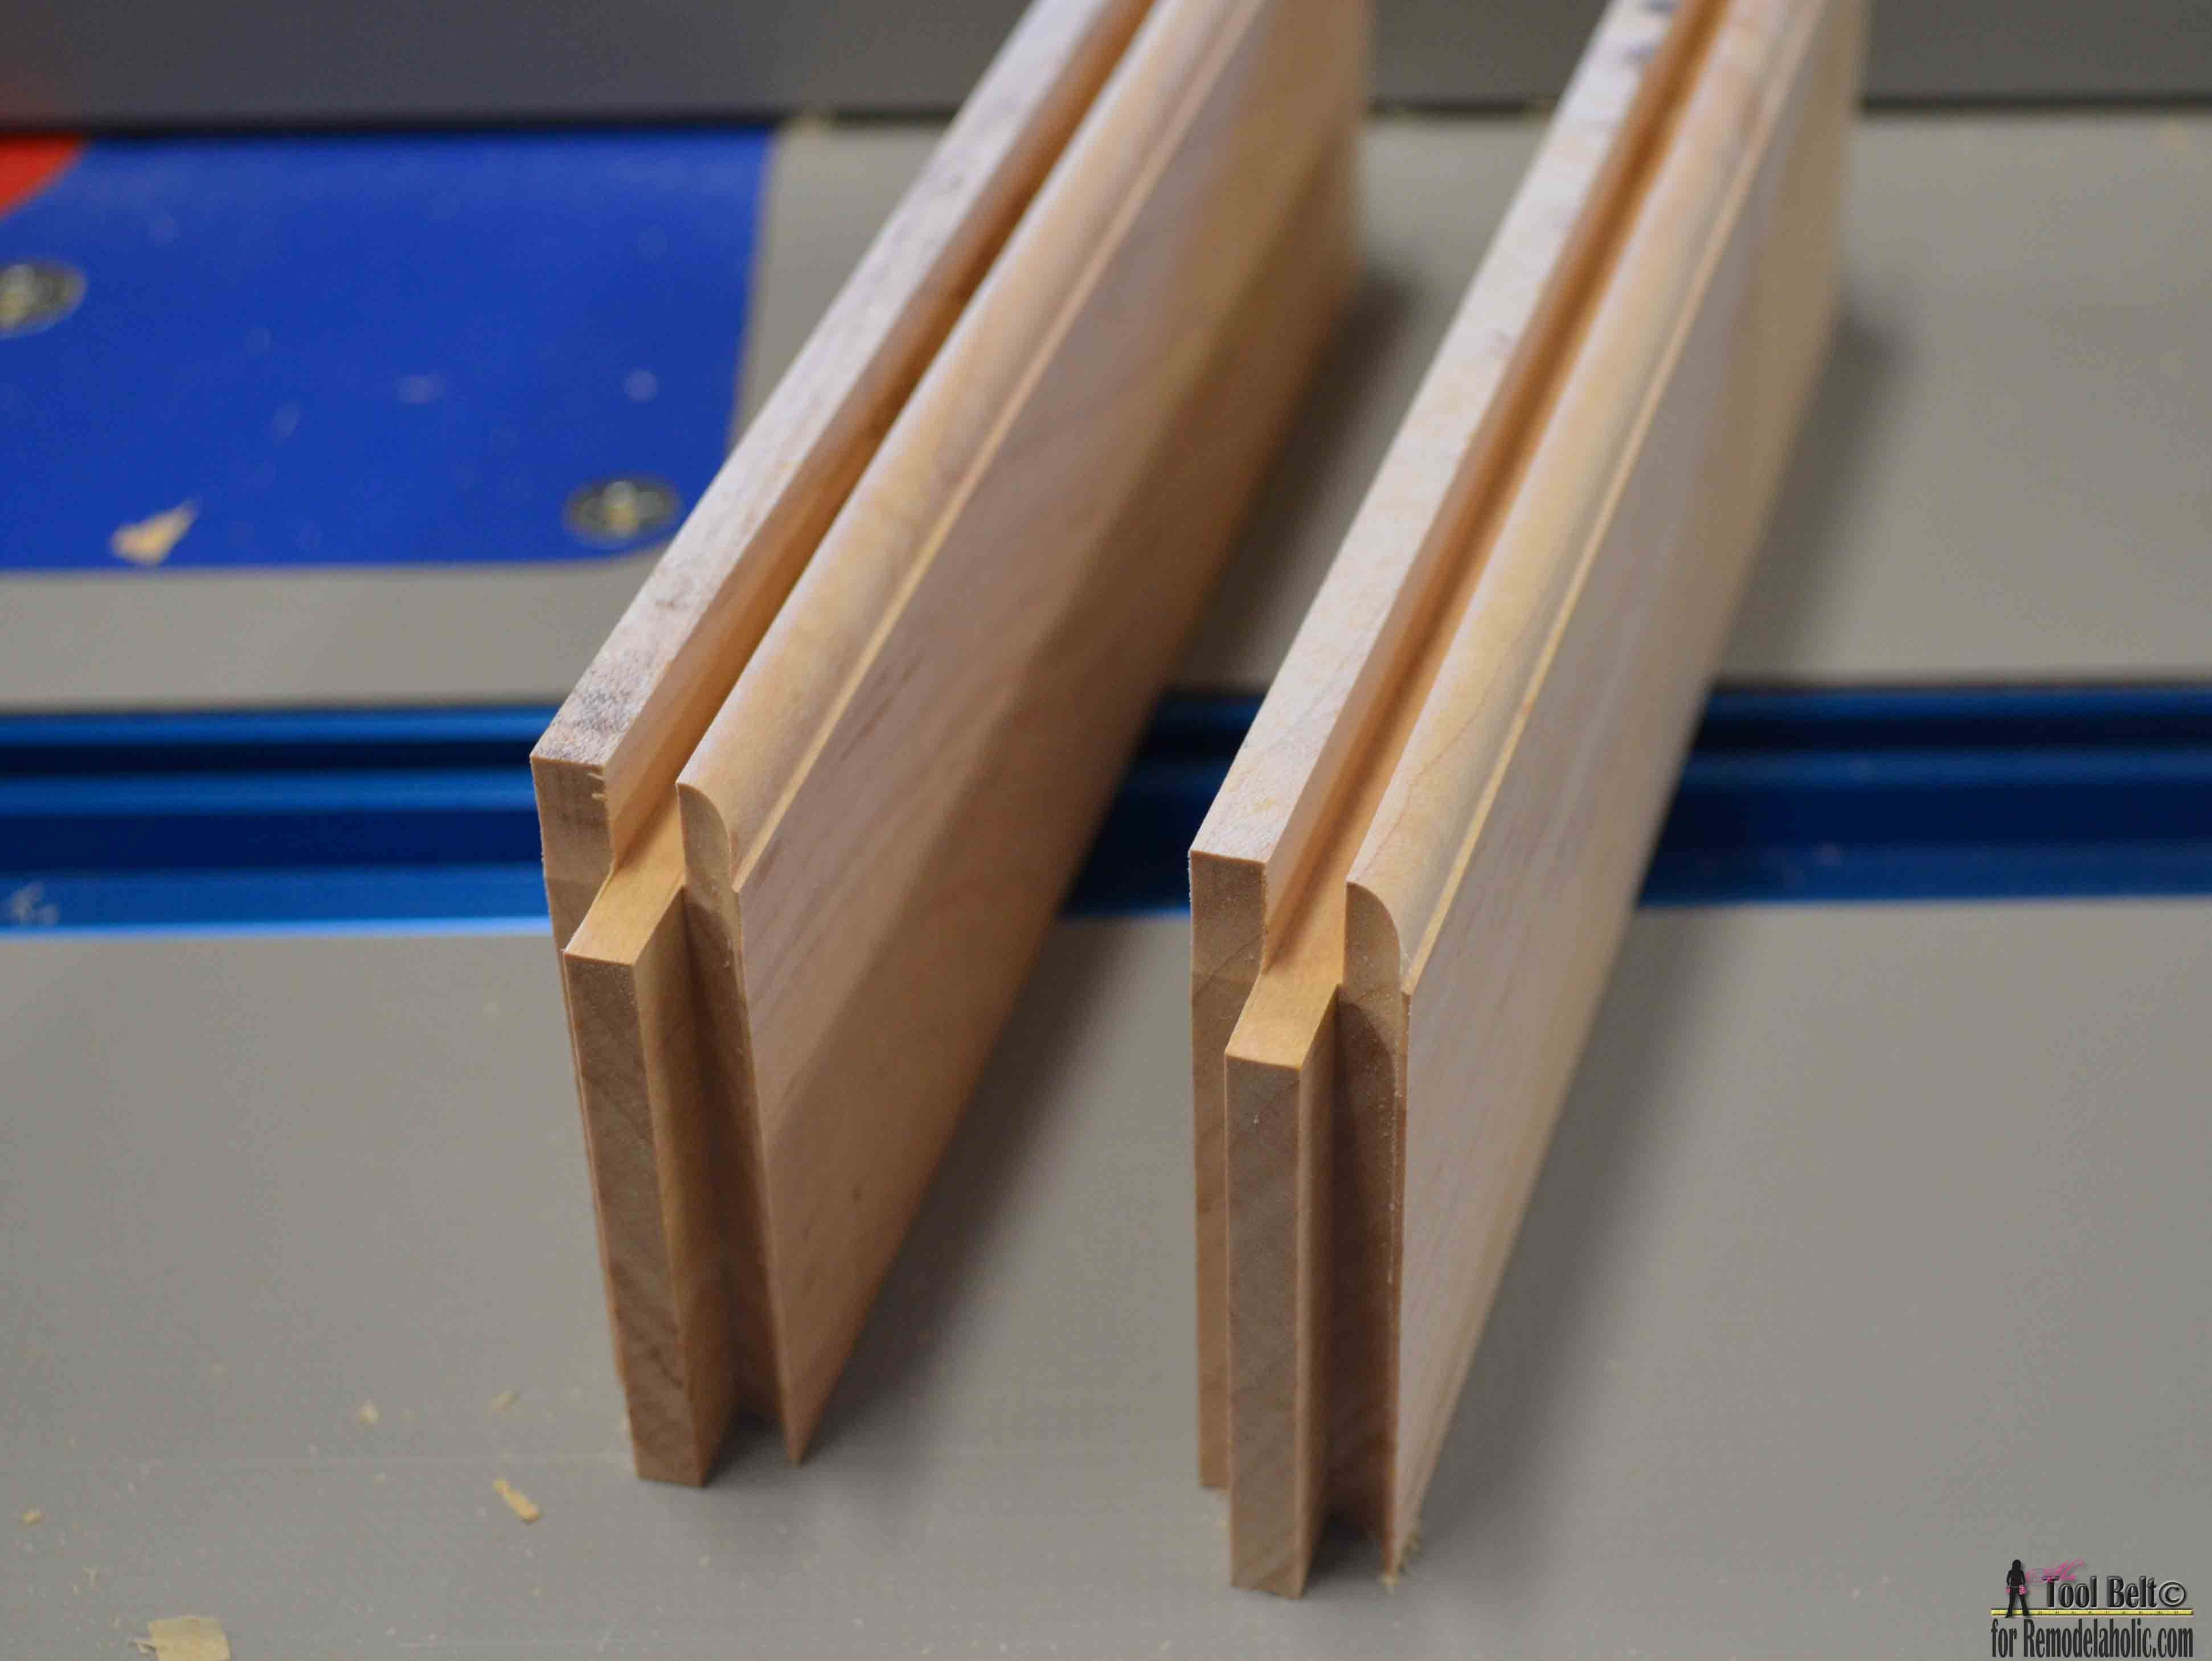 Router Bits To Make Raised Panel Cabinet Doors Httpadvice Tips